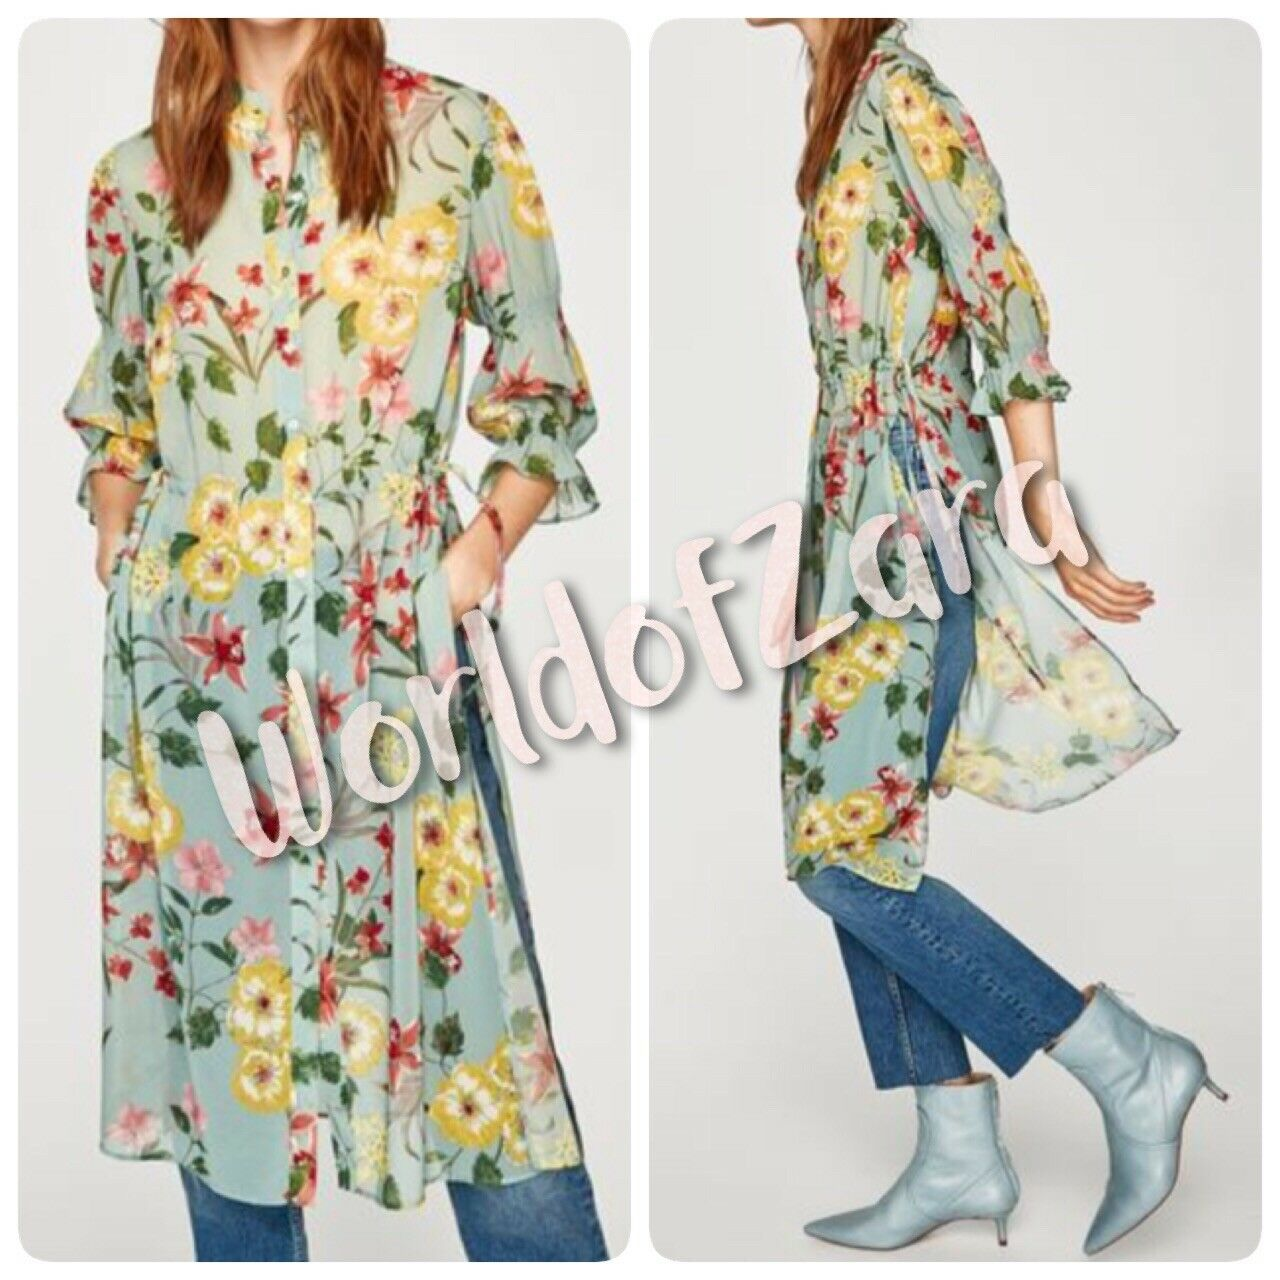 NWT ZARA LONG FLORAL PRINT SHIRT DRESS 7818 119 SEA GREEN S M